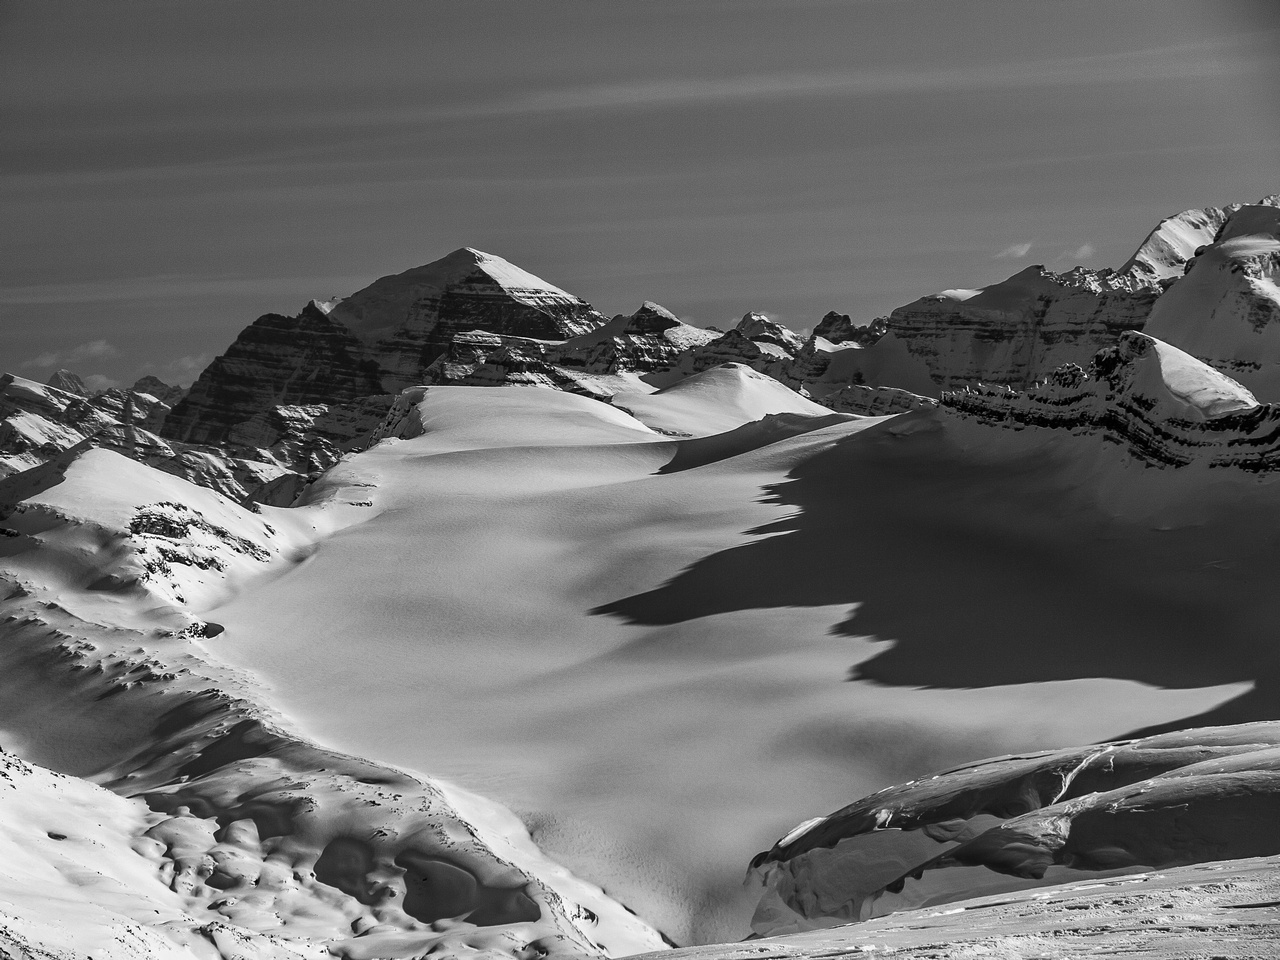 Mount Temple rises above the Waputik Glacier that we used for our exit to Balfour Creek / Hector Lk.